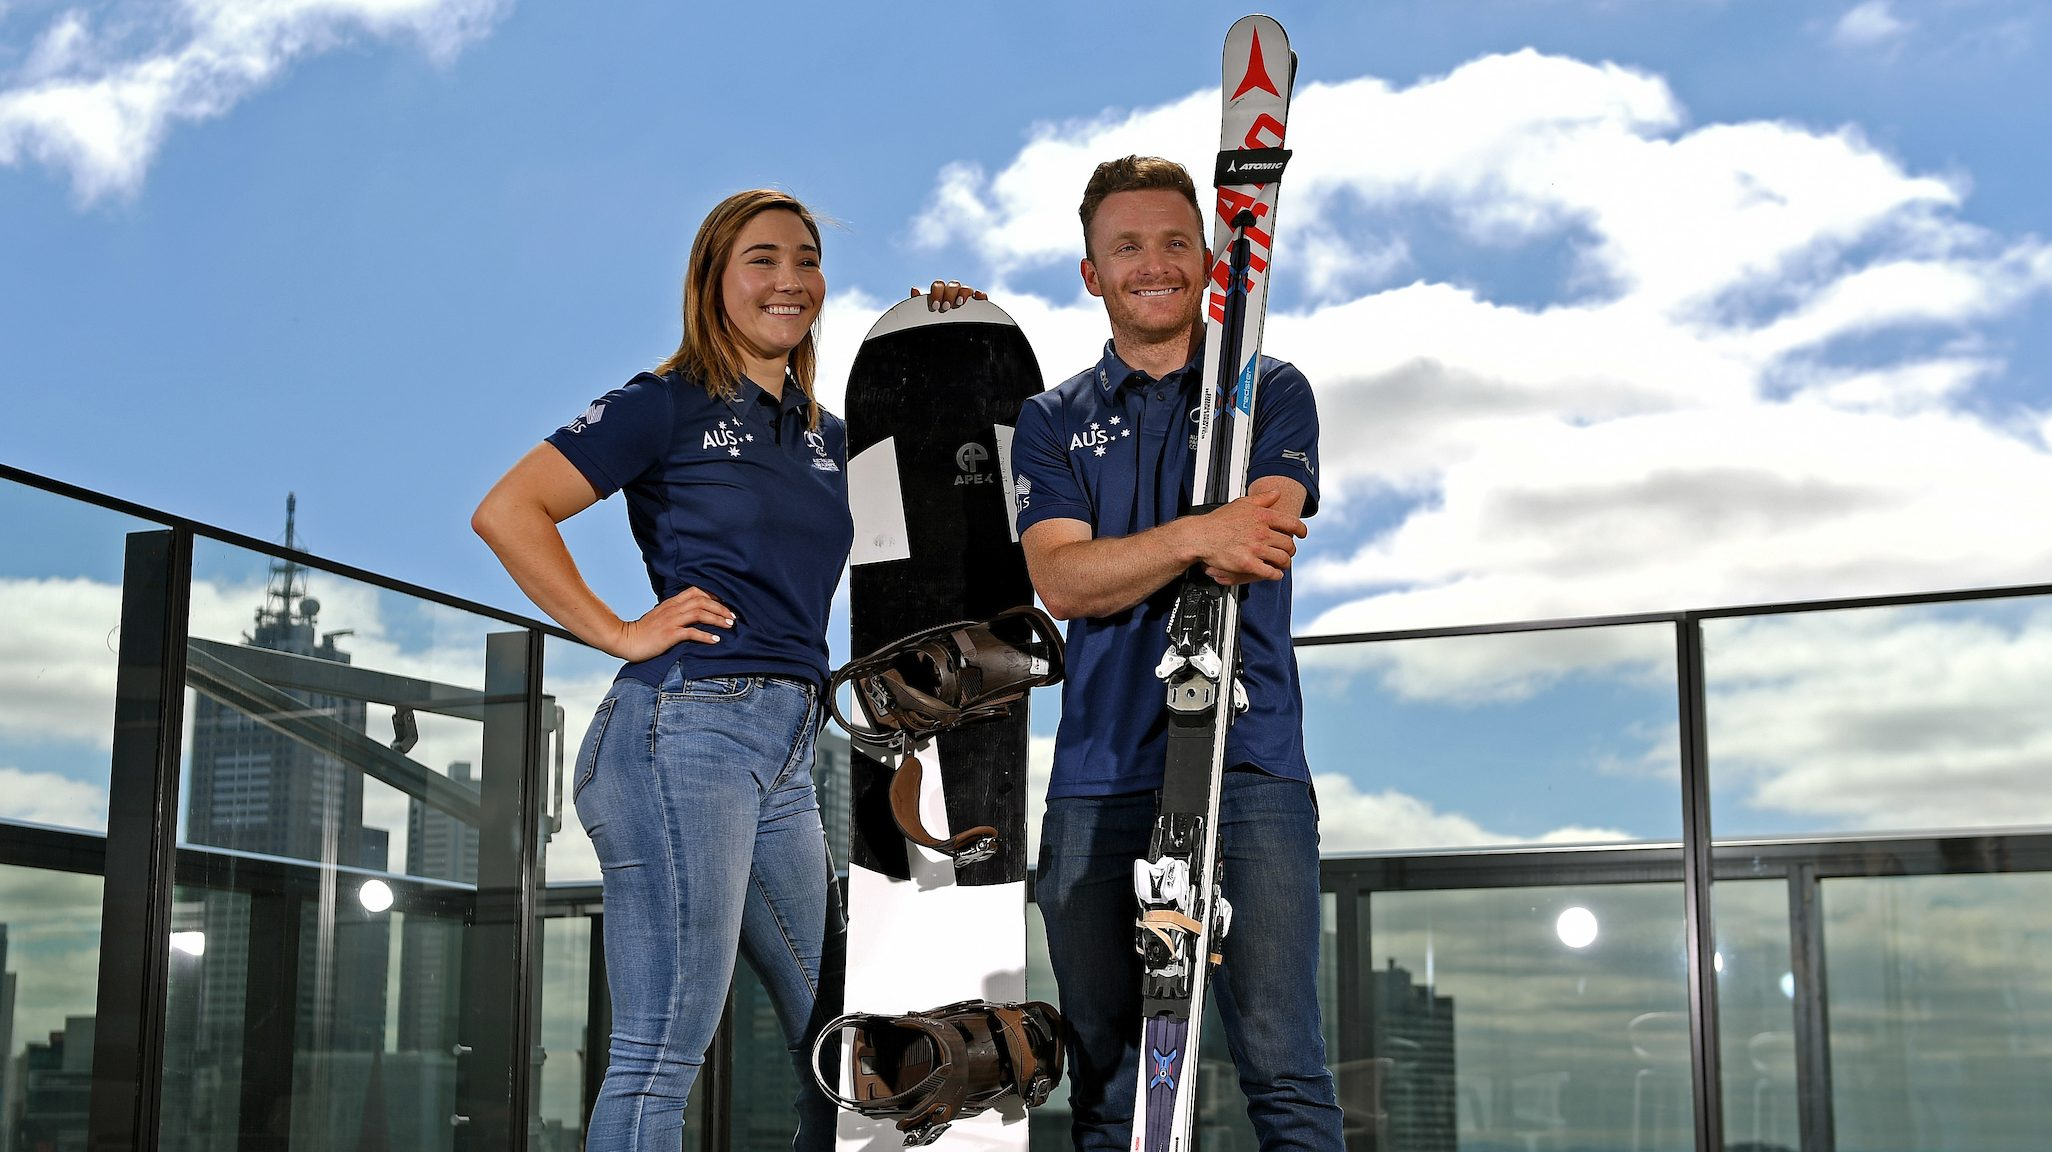 Australian Paralympic Winter Team for PyeongChang 2018 announced